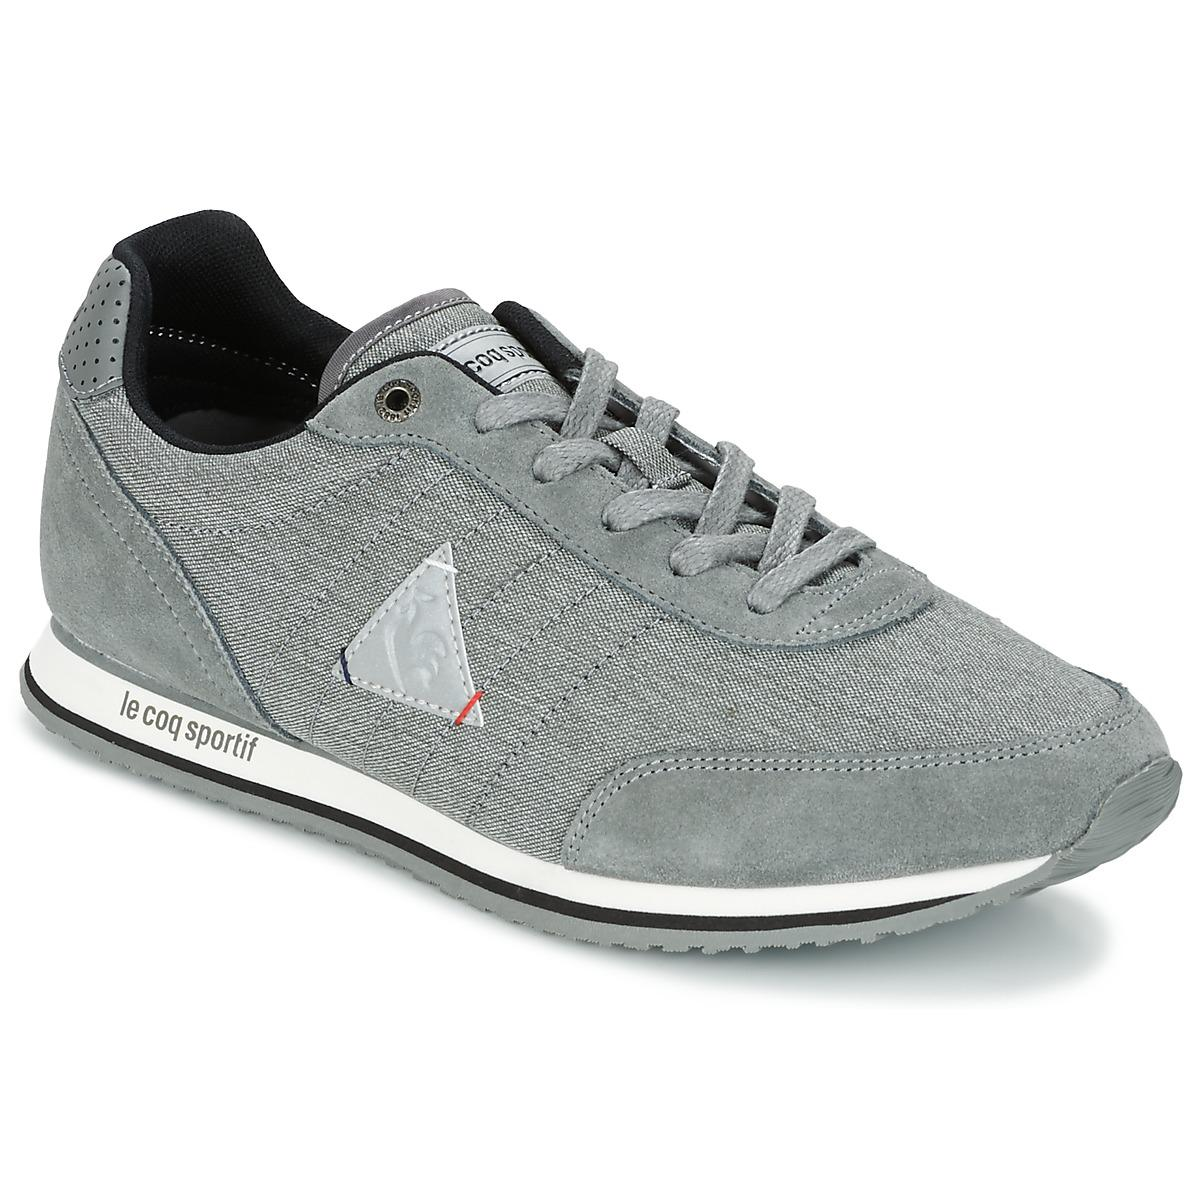 Marsancraft 2 Tones Reflective Men's Shoes (trainers) In Grey